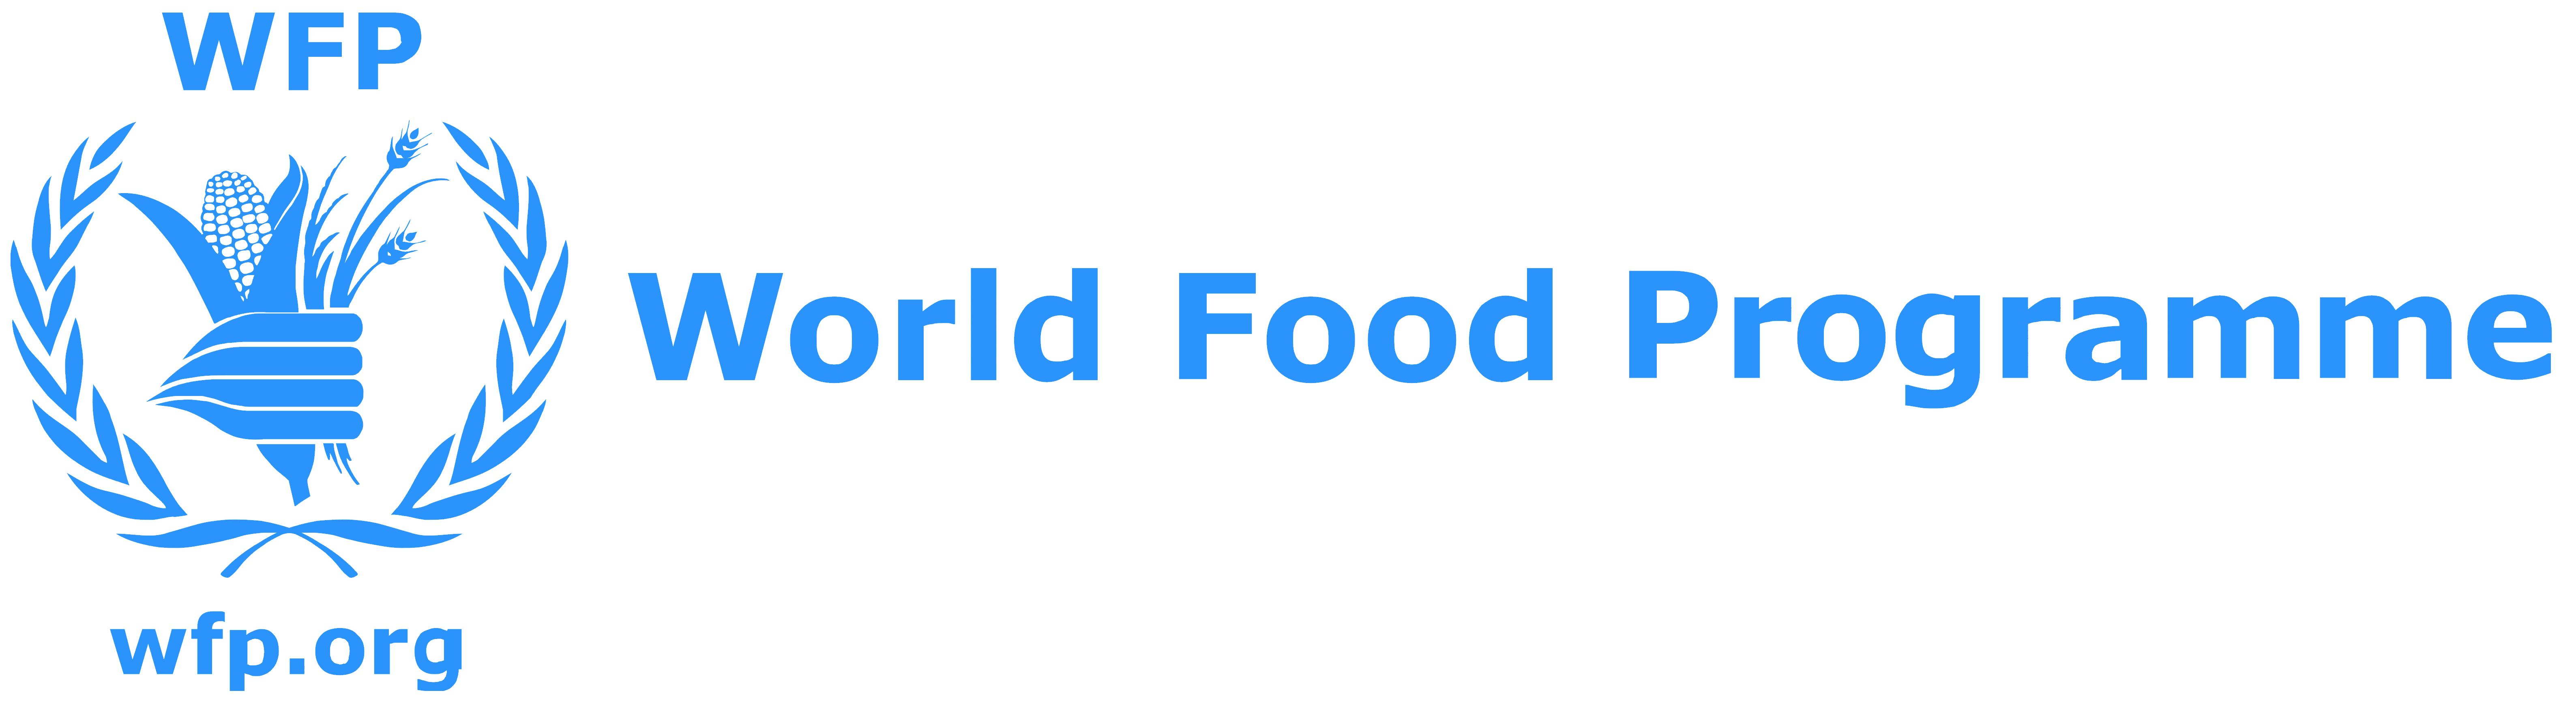 World Food Programme Wfp Acted